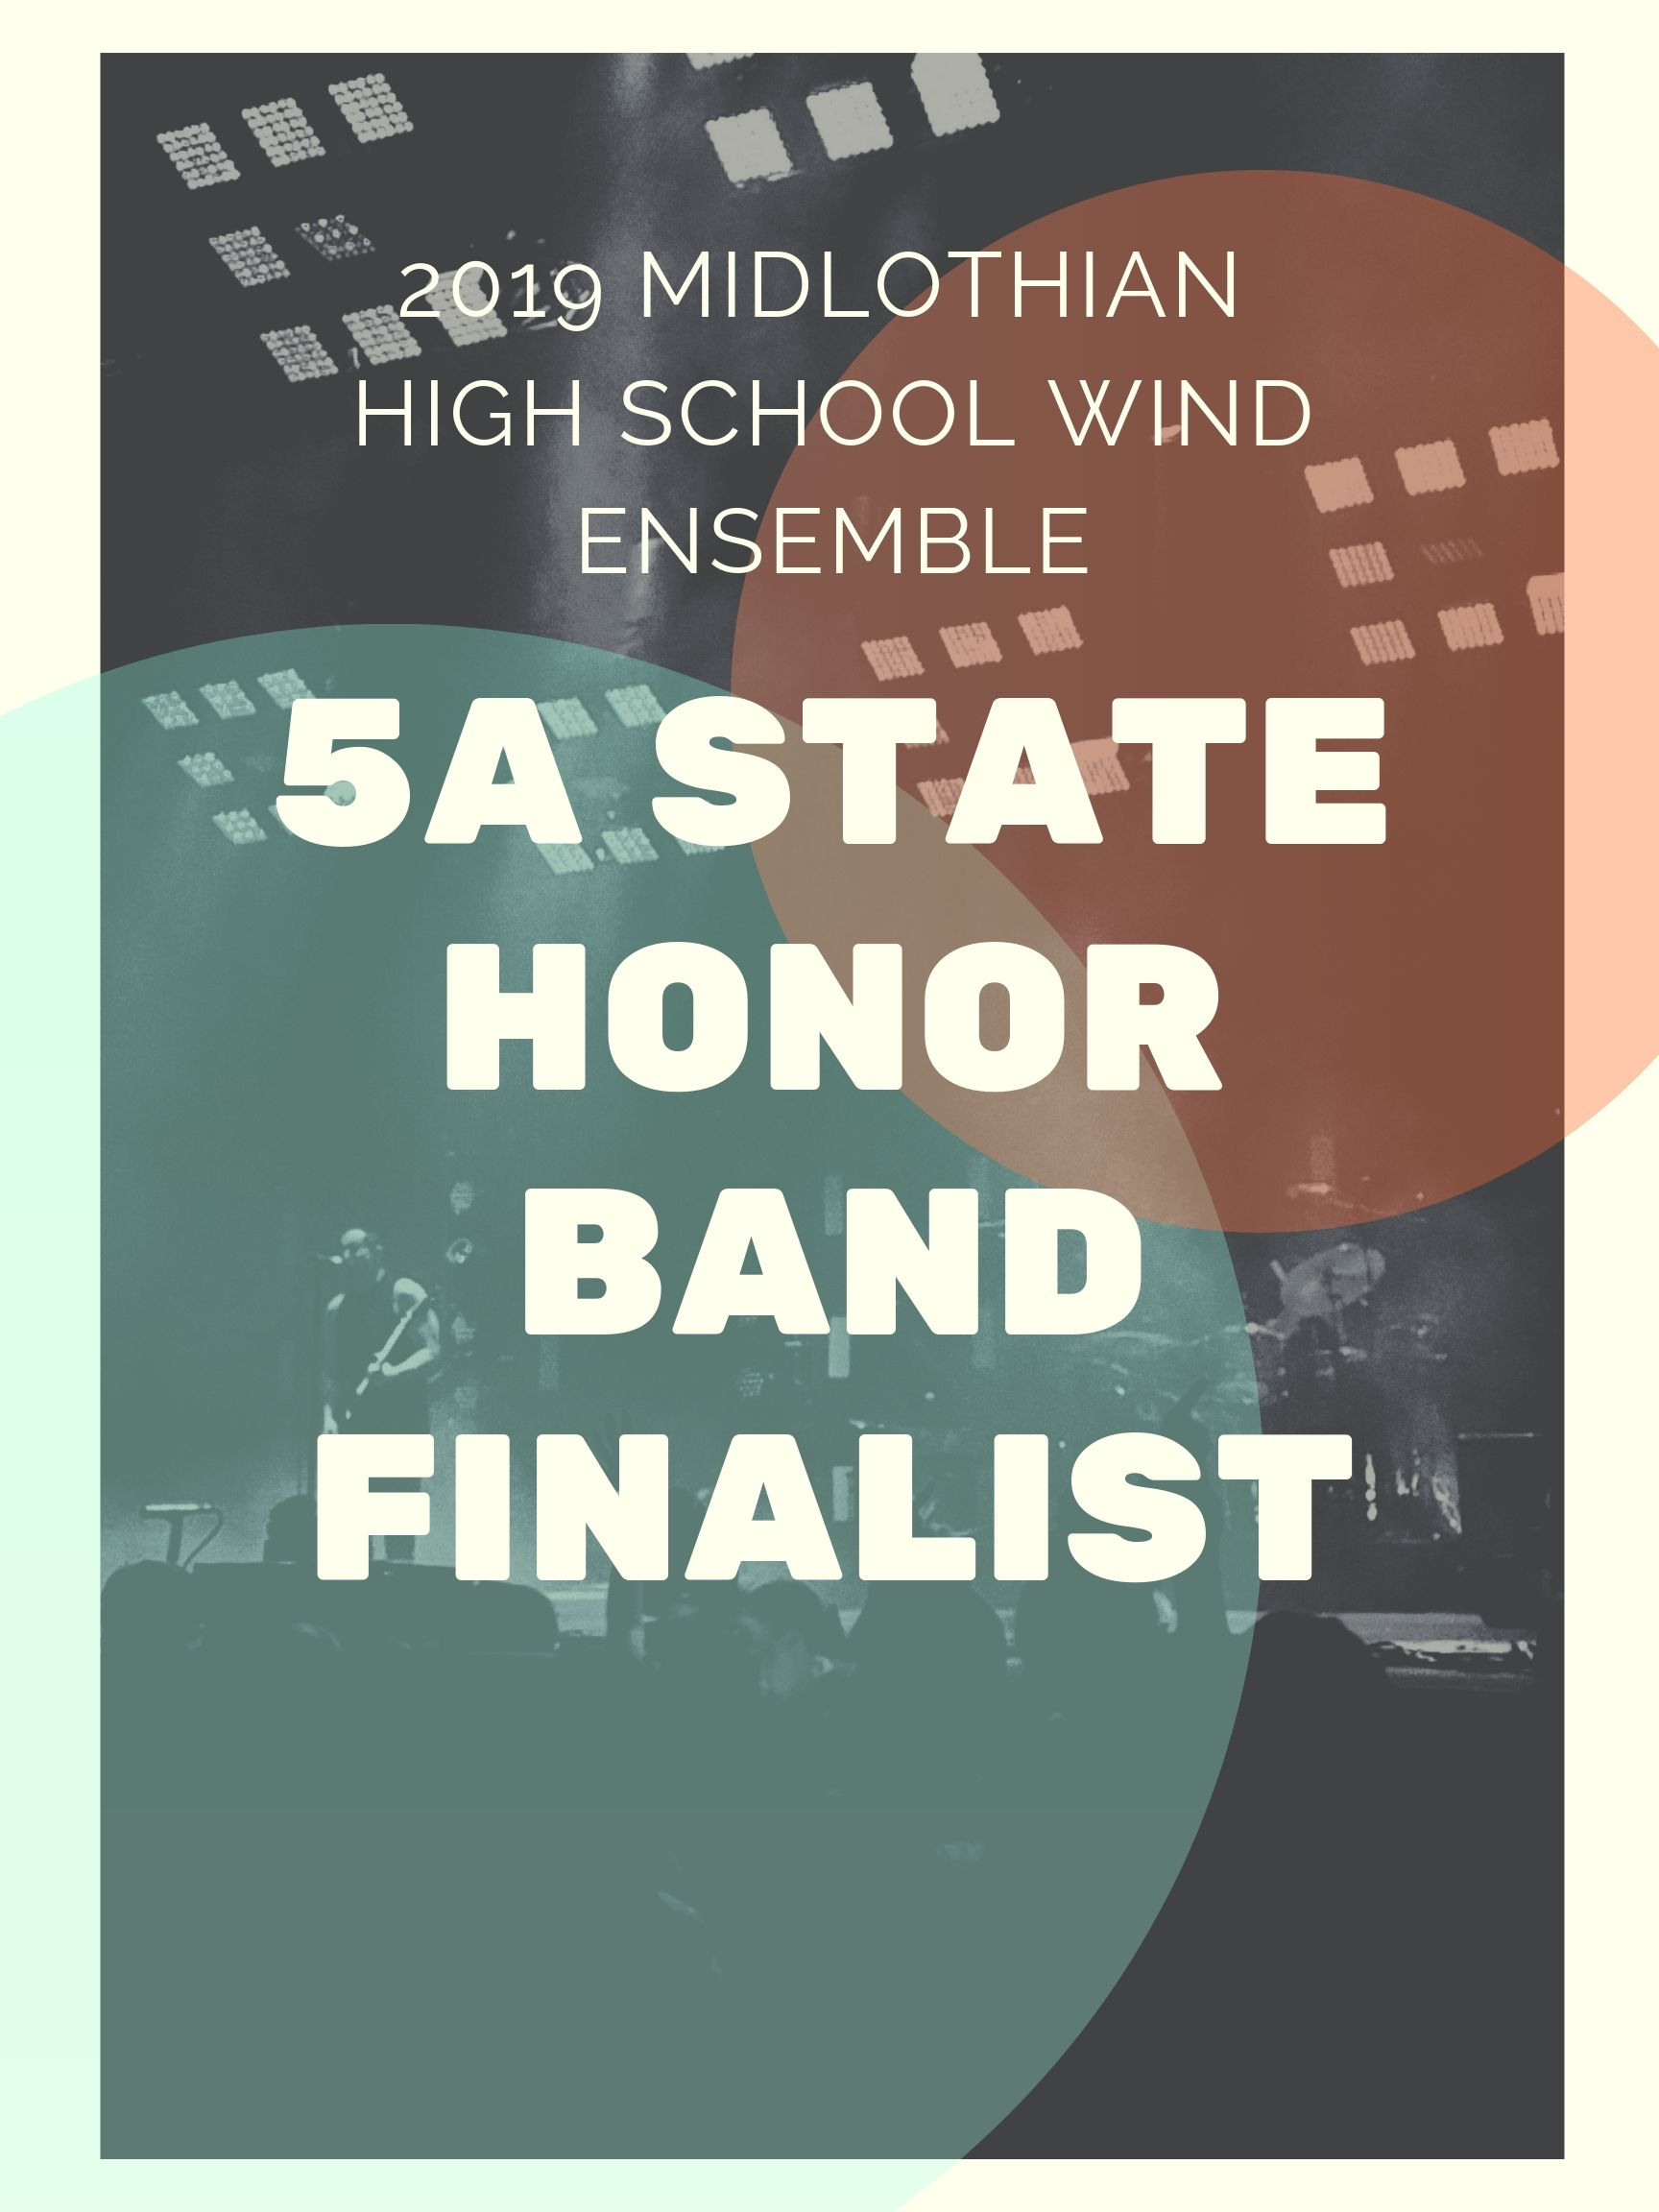 5a State Honor Band Finalist.jpg